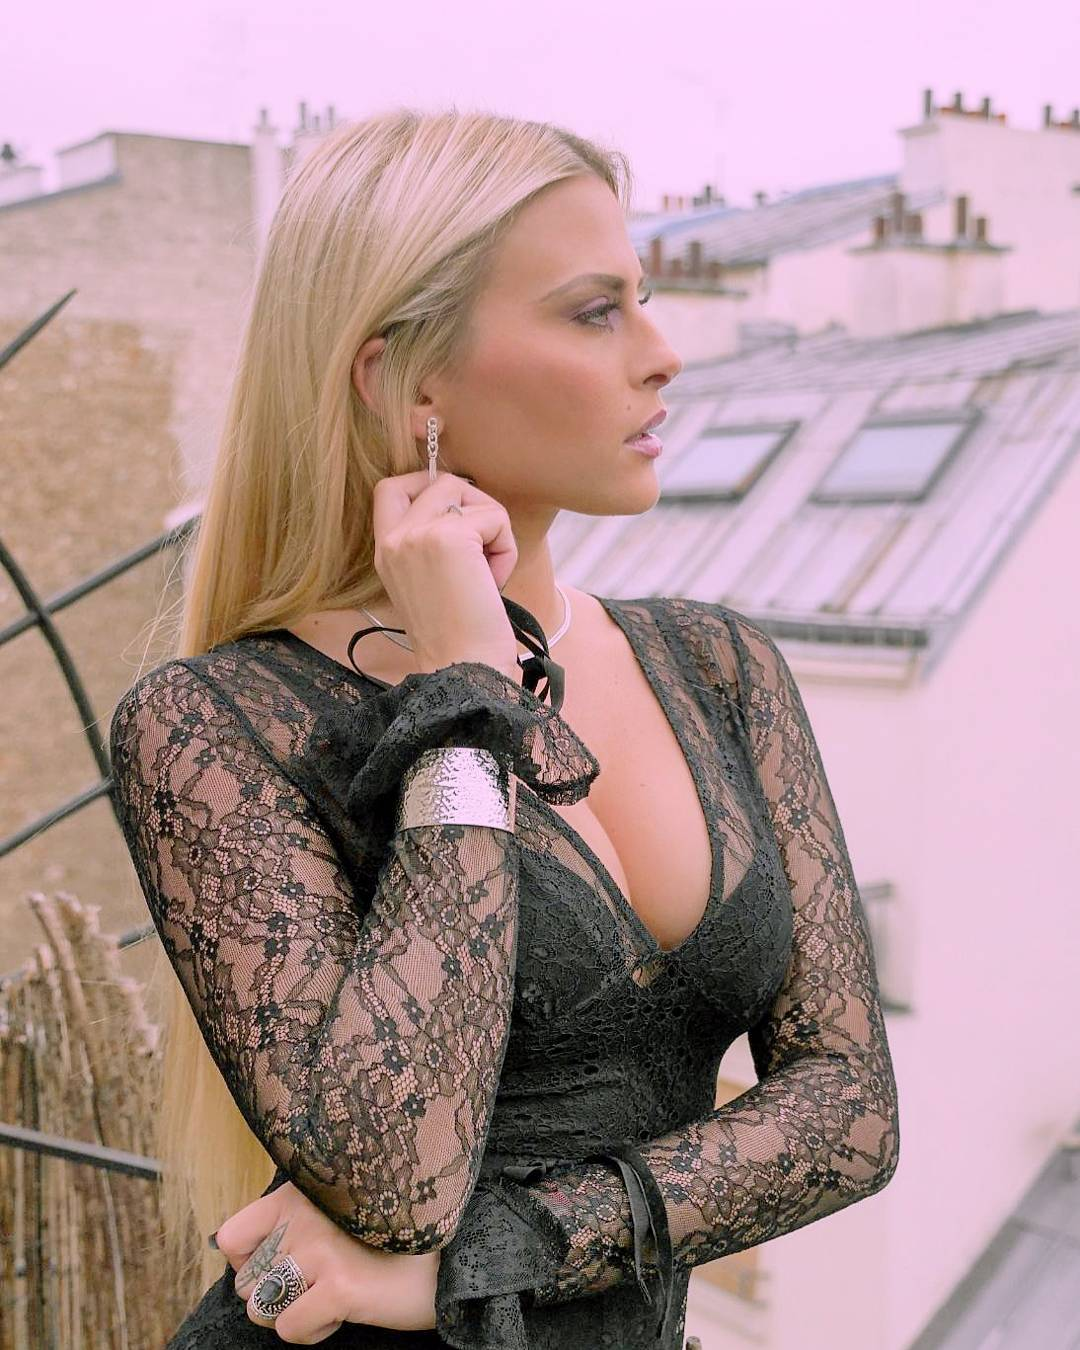 Kelly Vedovelli en robe de dentelle